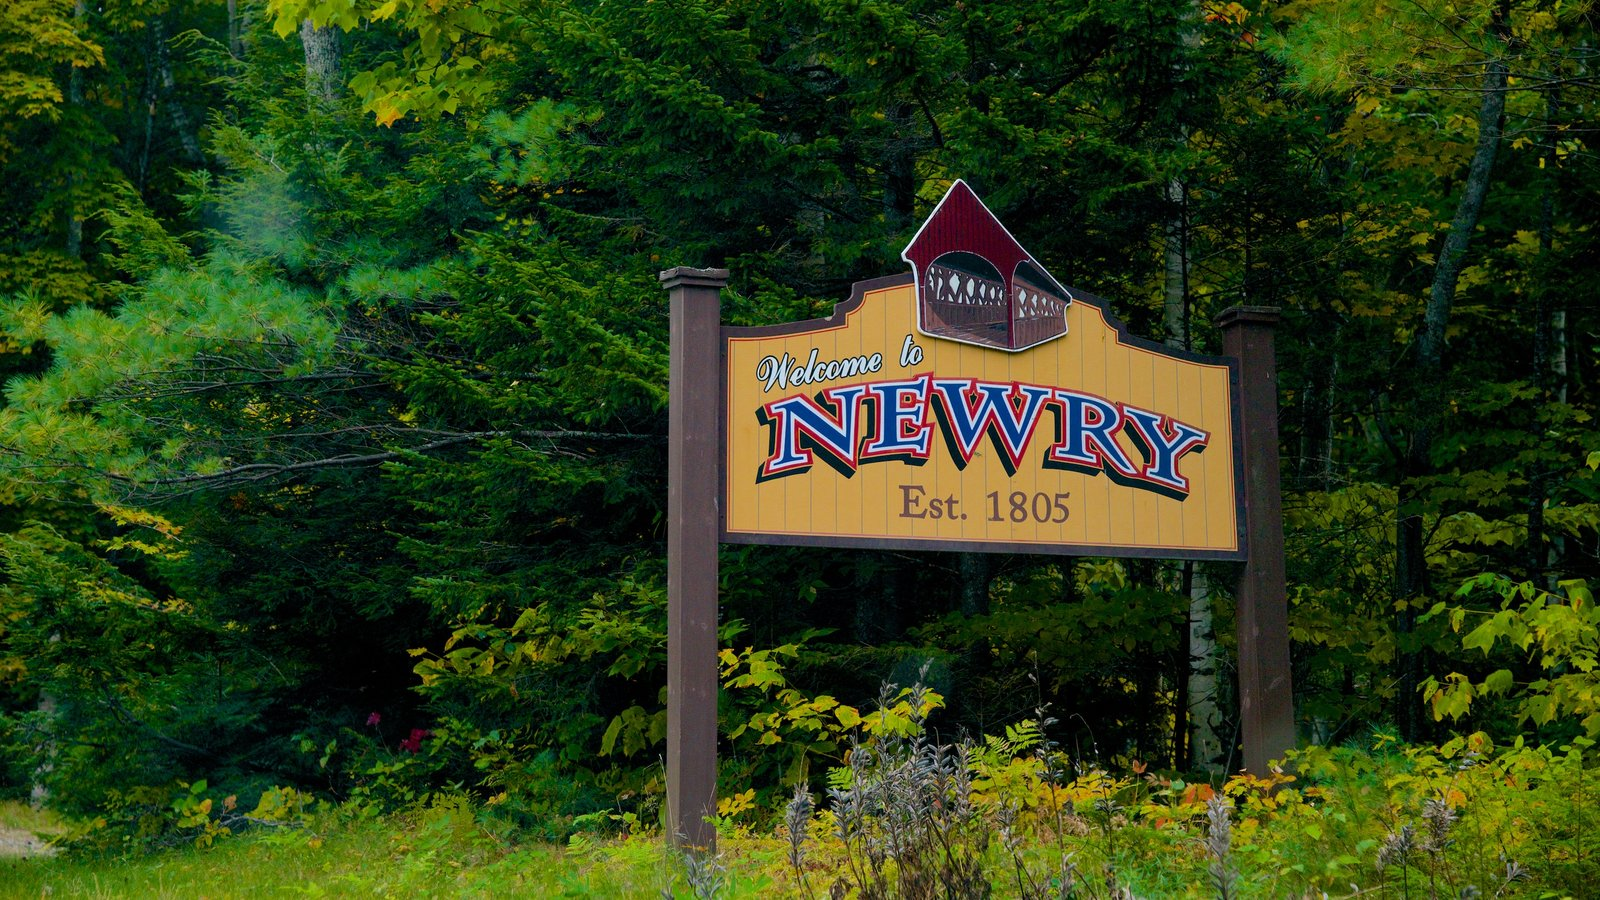 Maine featuring signage and forests